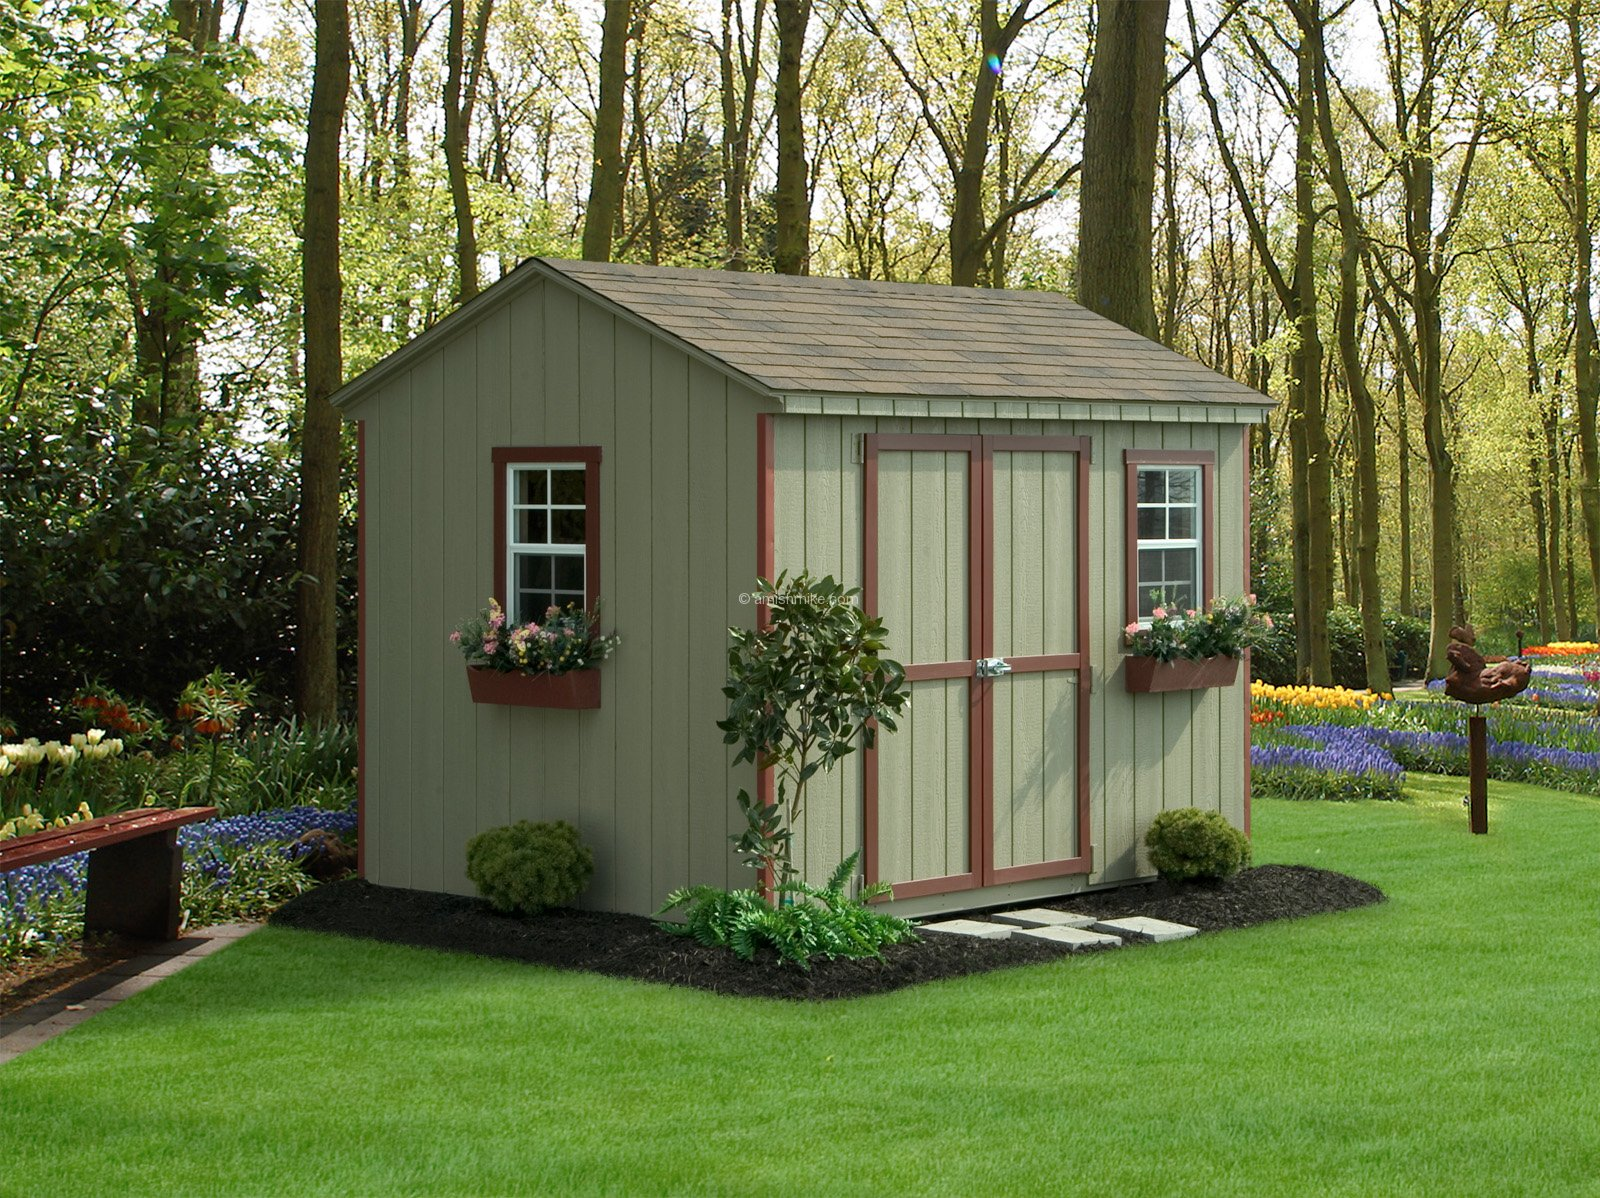 Garden Sheds Nj amish mike- amish sheds, amish barns, sheds nj, sheds, barns